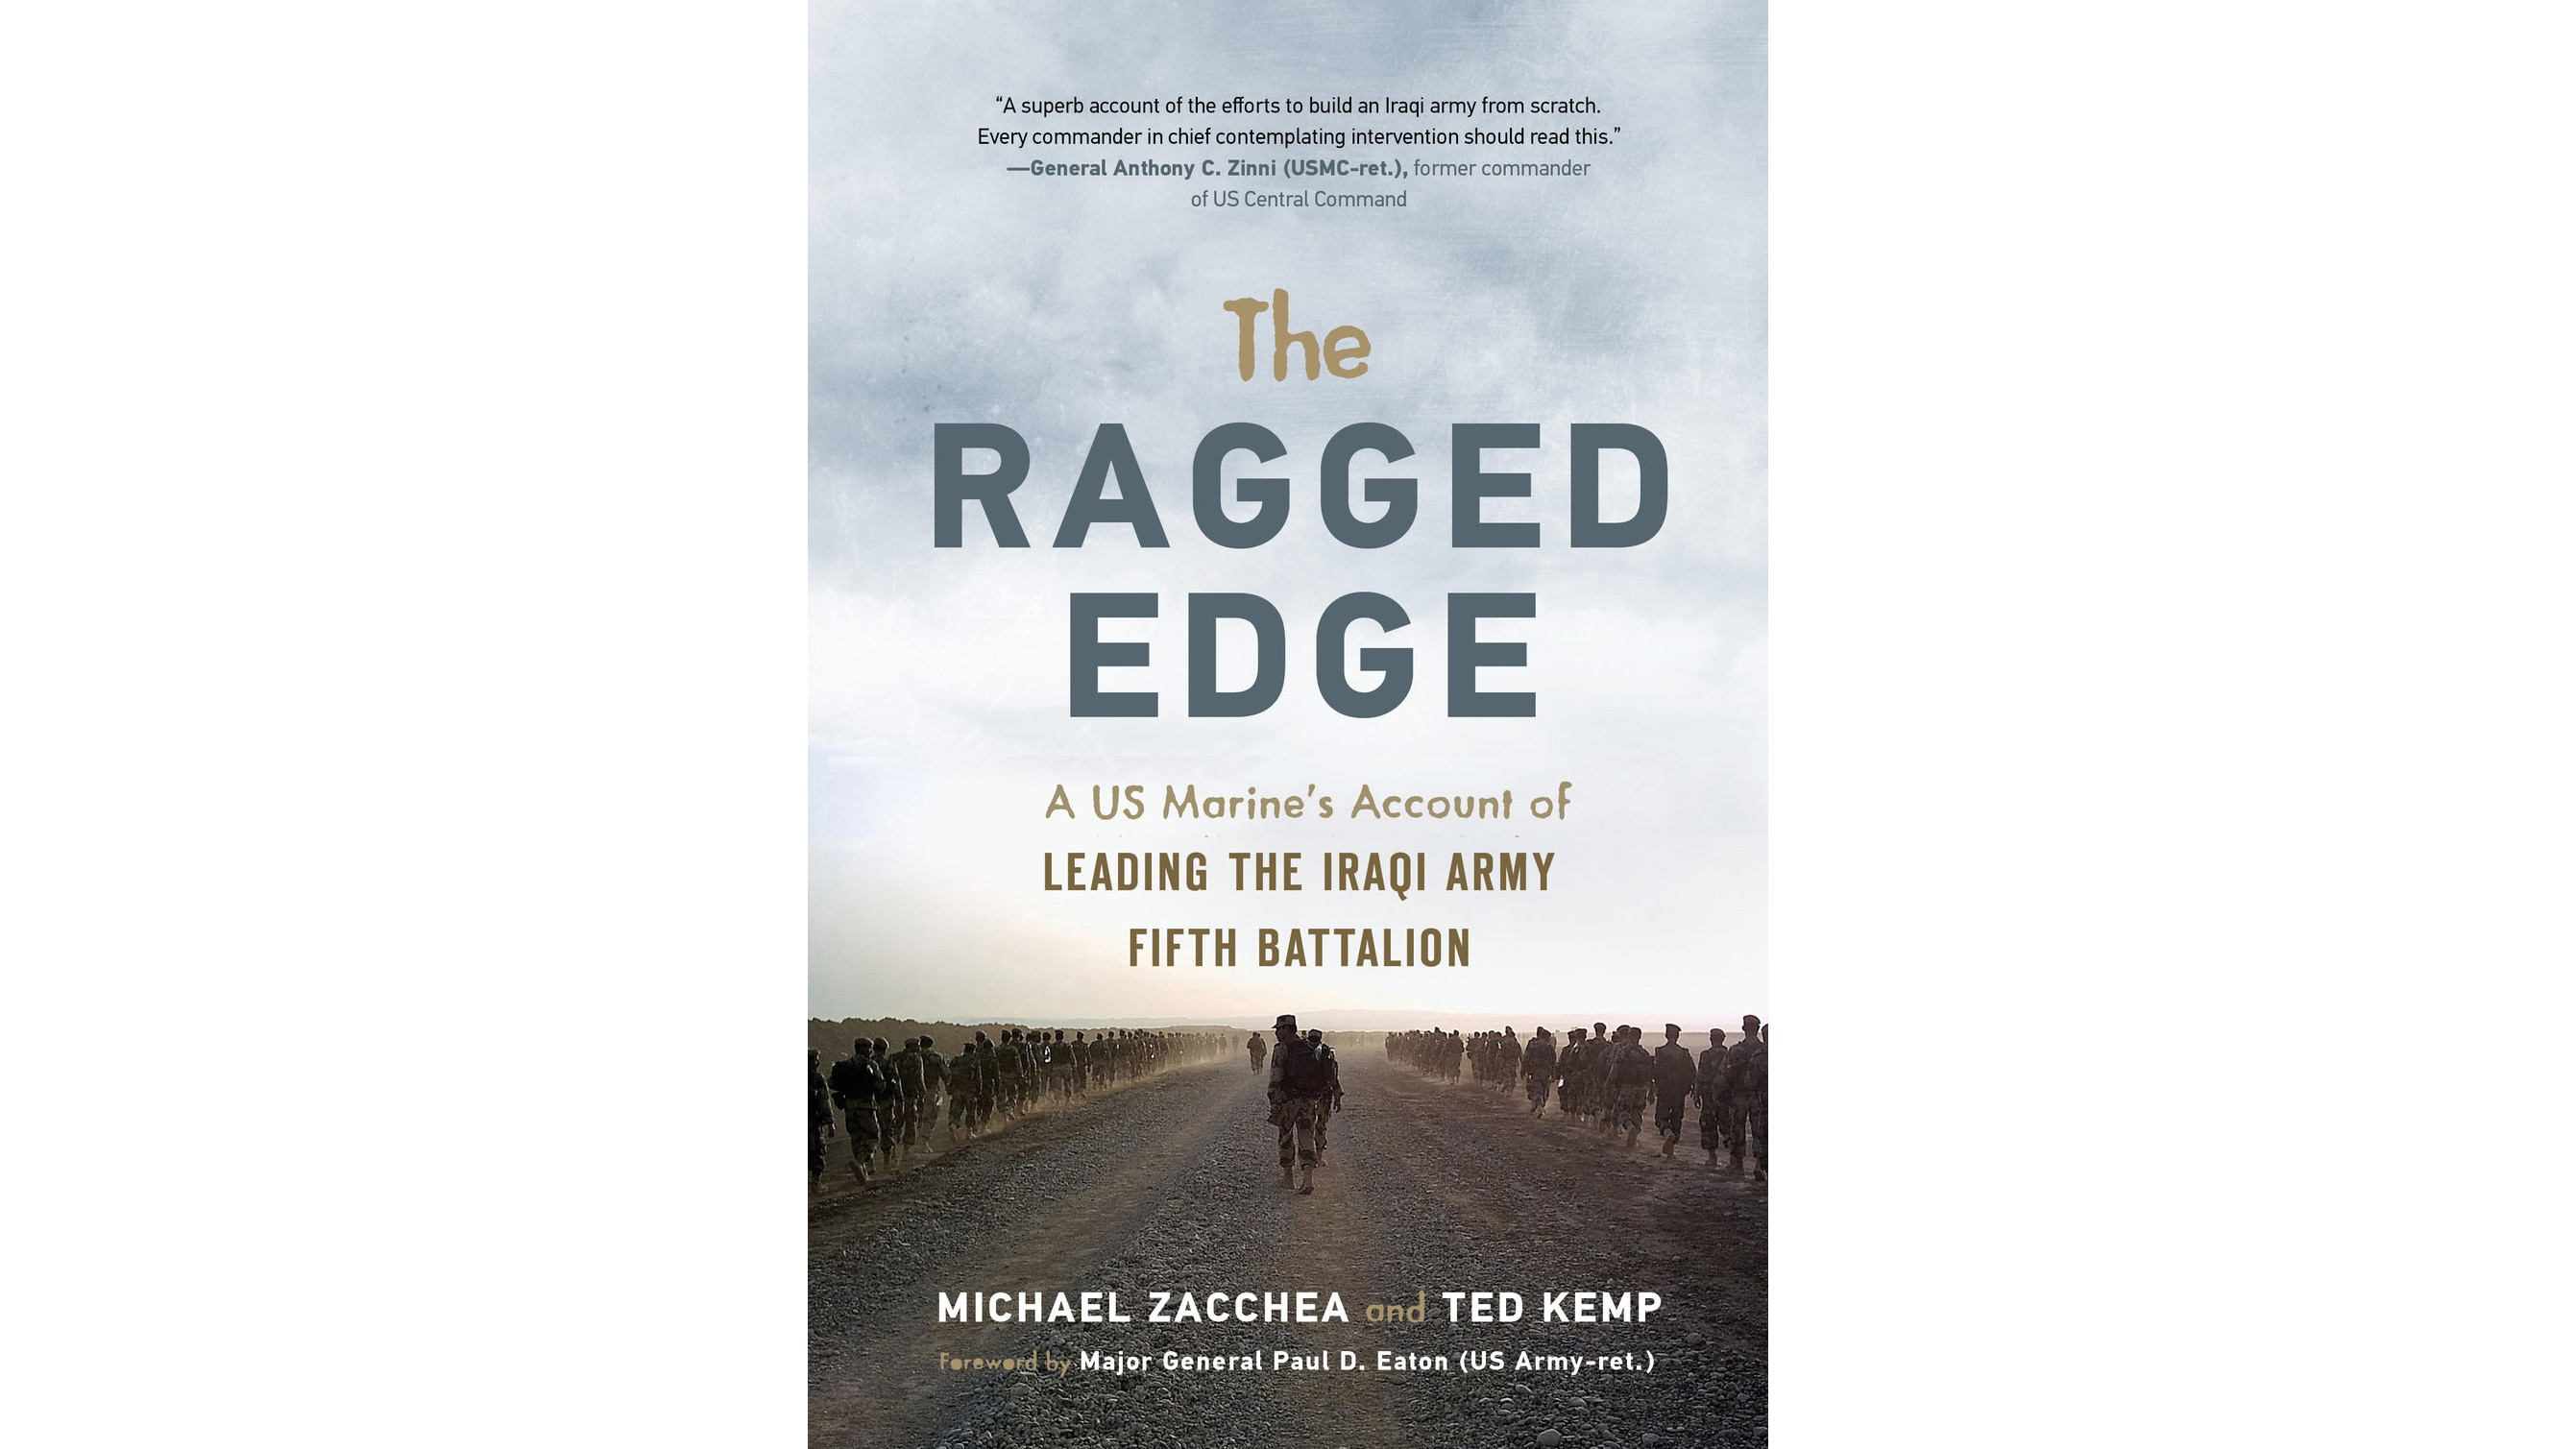 Spring 2017 book review -- The Ragged Edge: A U.S. Marine's Account of Leading the Iraqi Army Fifth Battalion